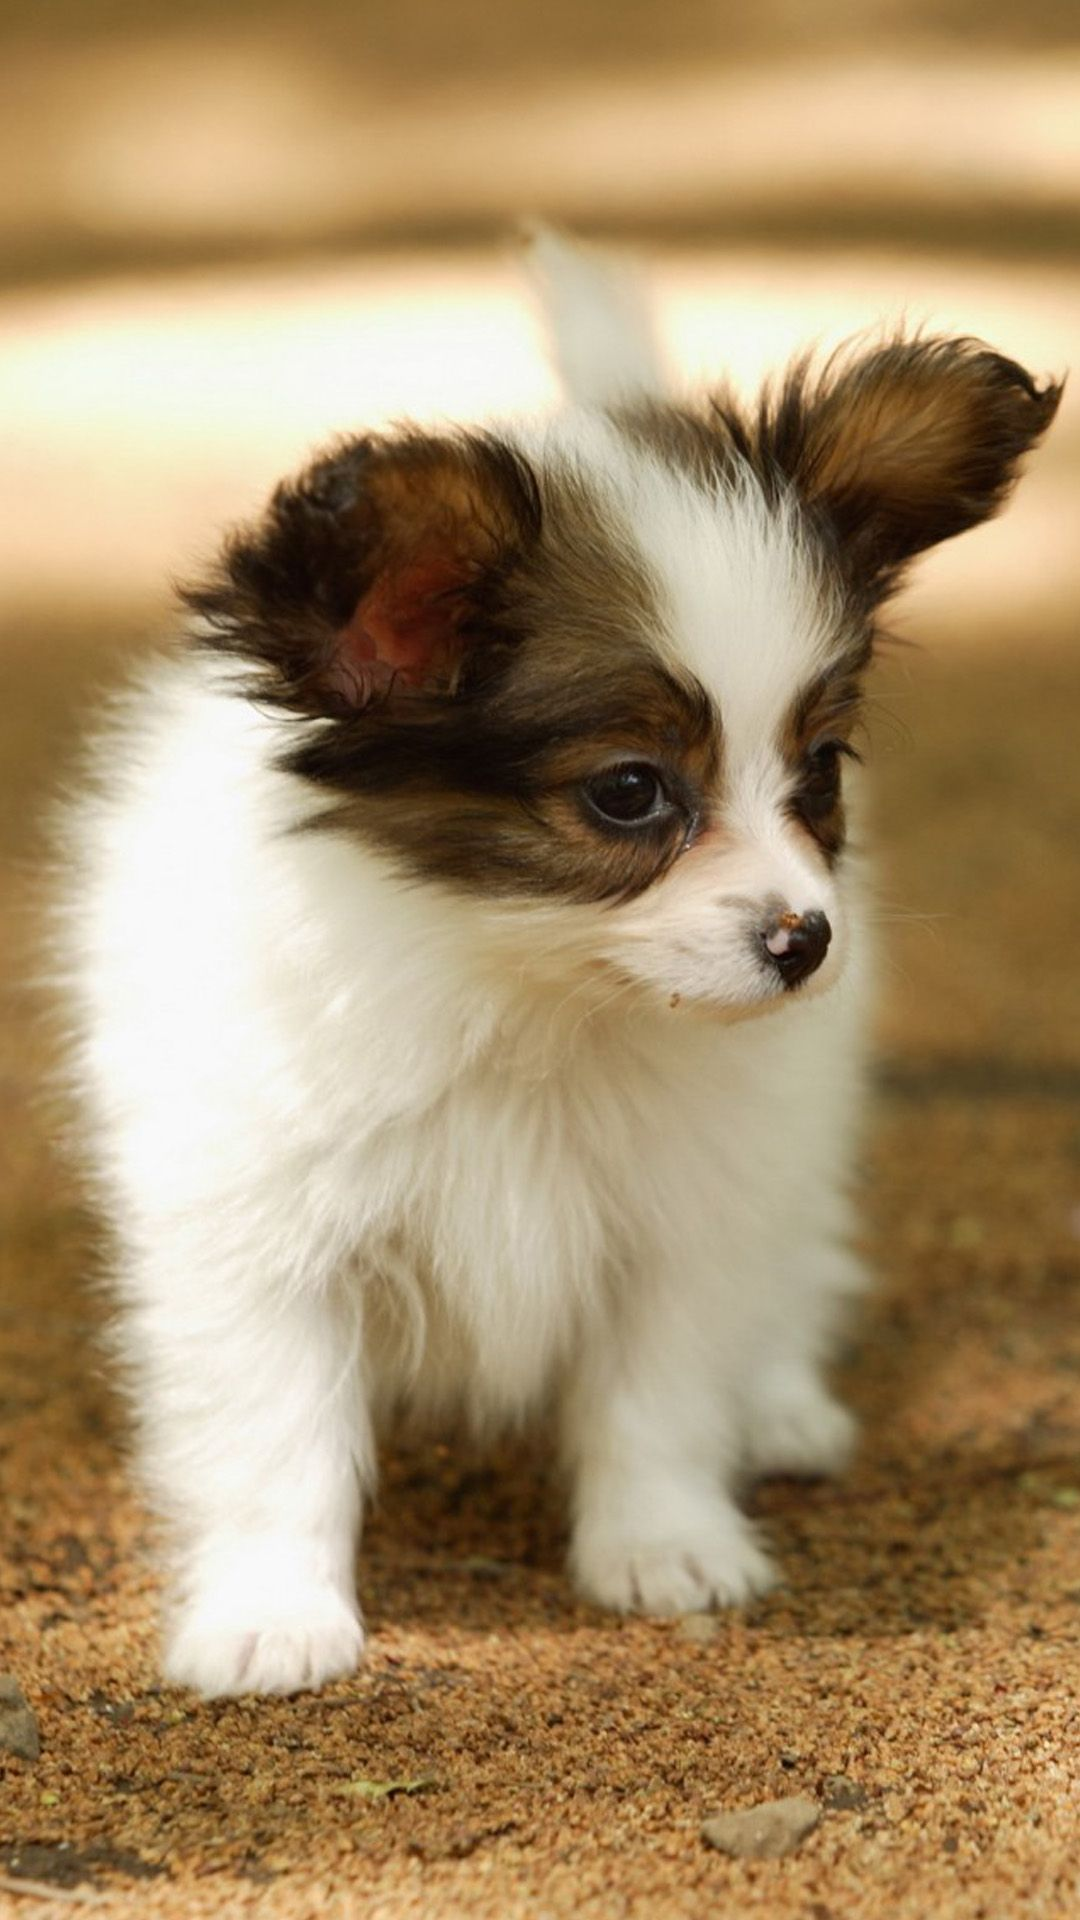 Cute Lovely Puppy Walking Dog Animal Iphone 6 Wallpaper Cute Dog Wallpaper Cute Animals Cute Cats And Dogs